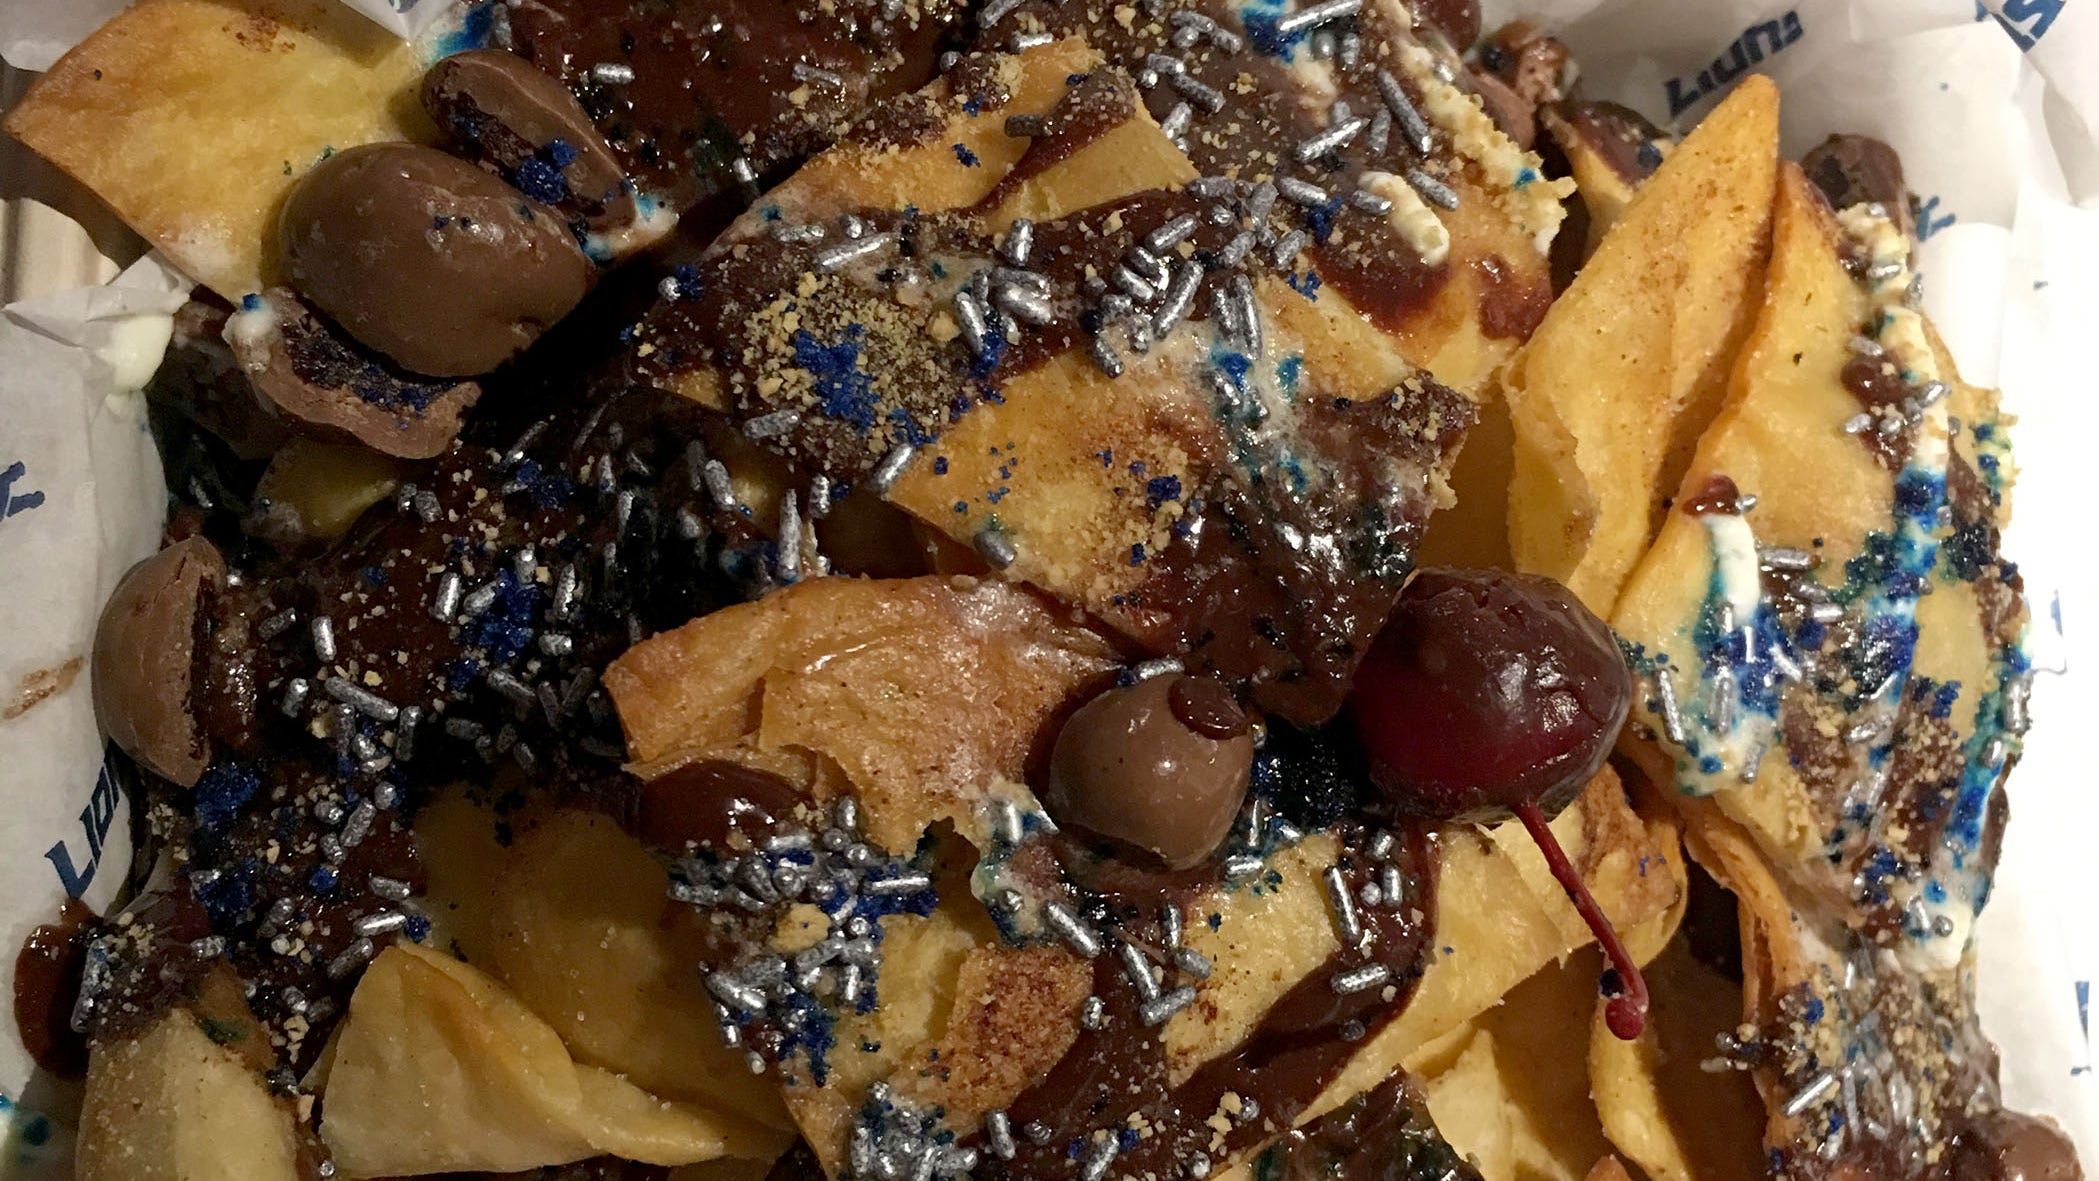 Michigan cherry chocolate nachos are topped with chocolate ganache, chocolate covered cherries, marshmallow fluff and nutella will be on the menu during Lions games at Ford Field in Detroit. The dish was photographed on Tuesday, August 14, 2018.